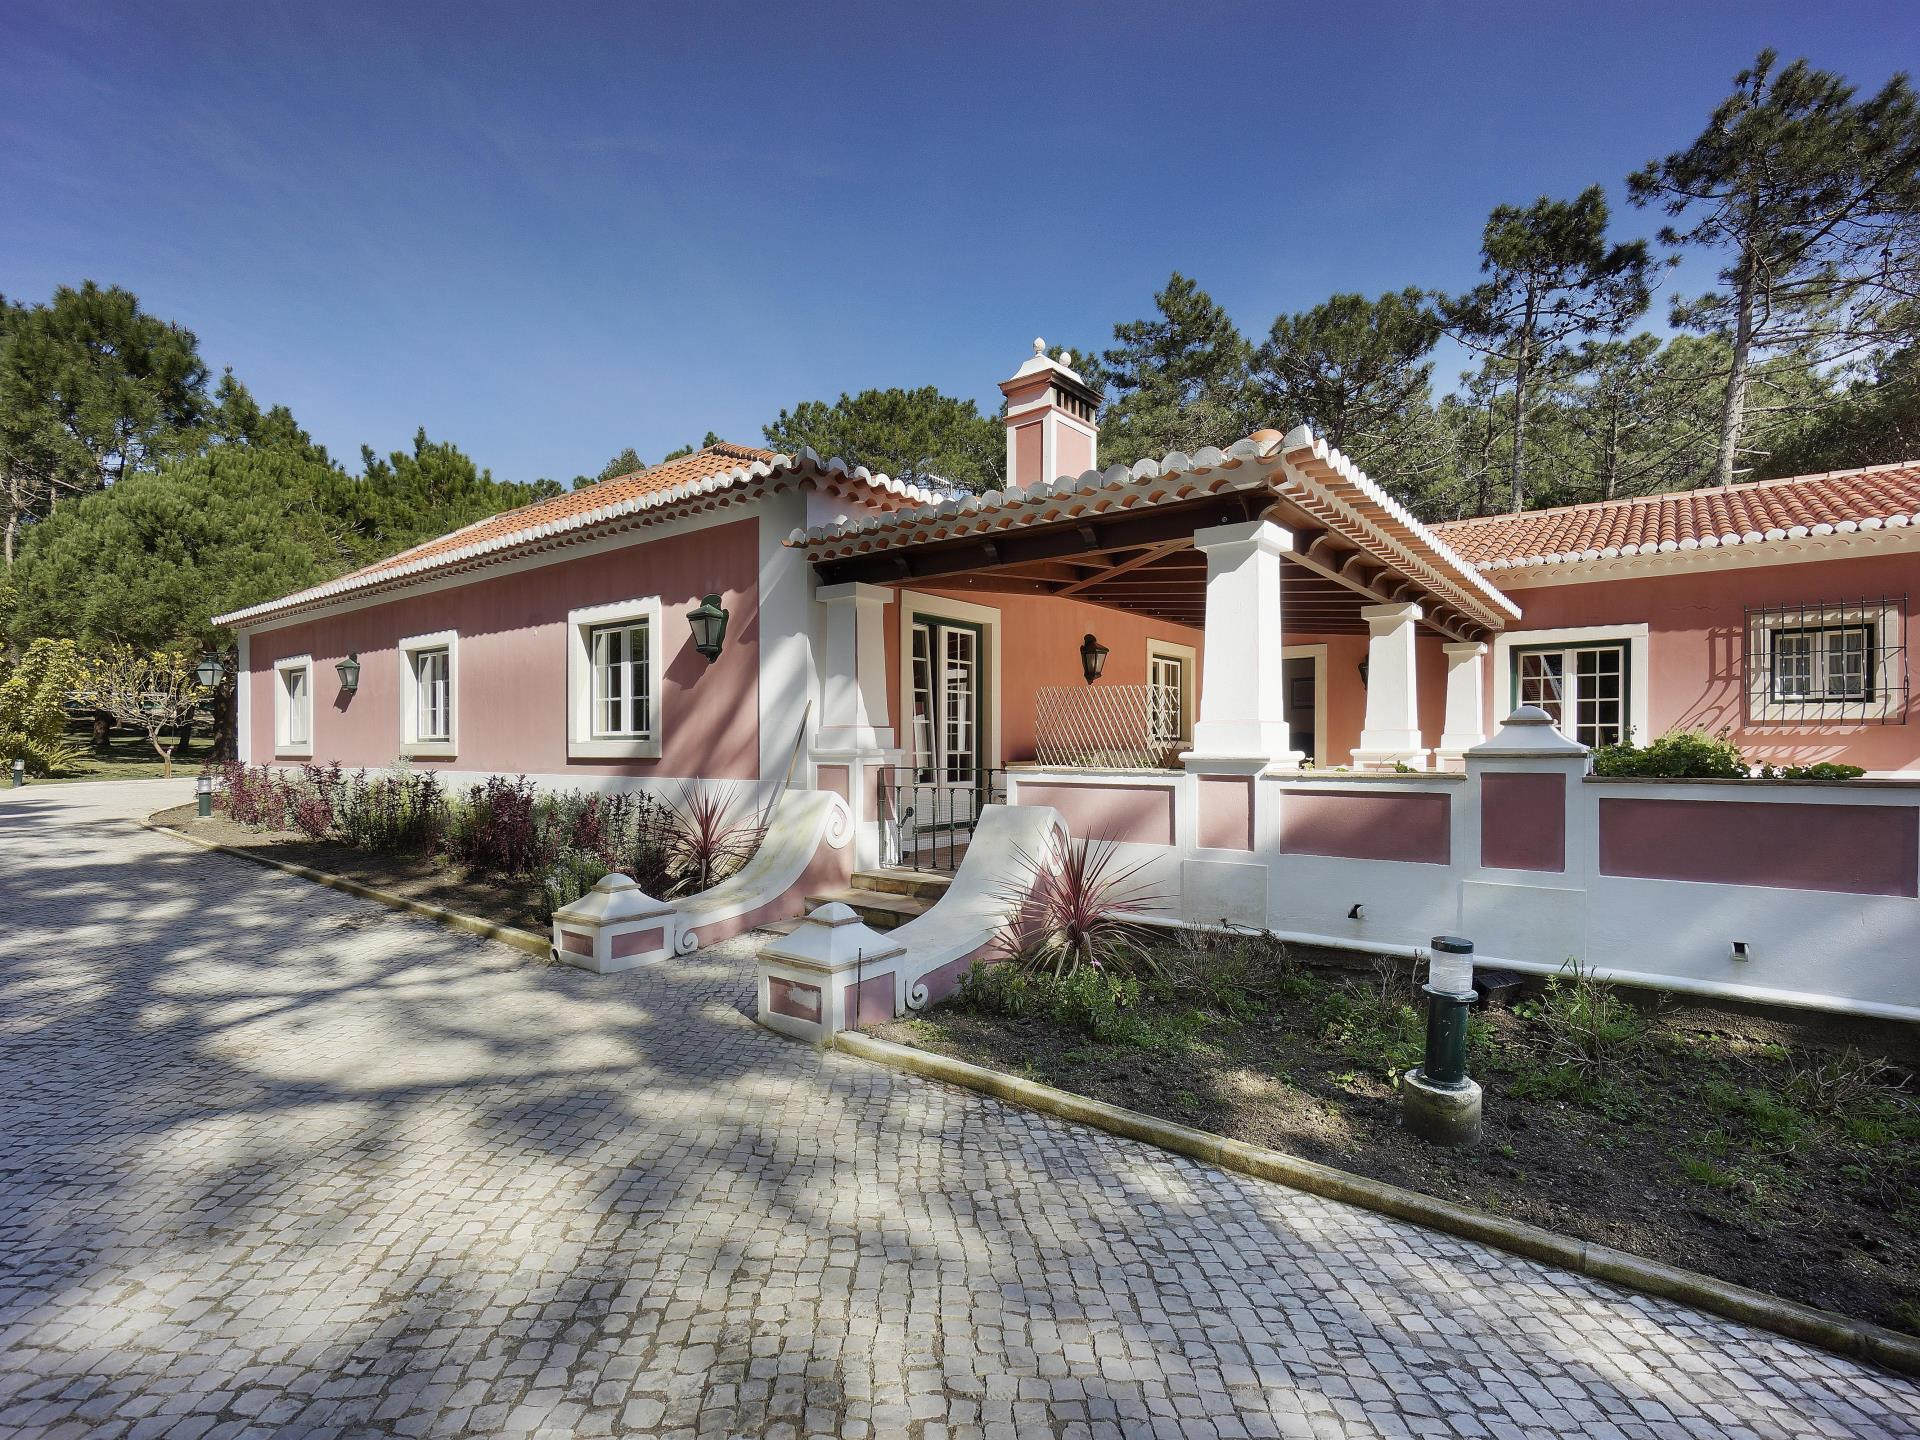 Casa Unifamiliar por un Venta en Detached house, 5 bedrooms, for Sale Sintra, Lisboa Portugal